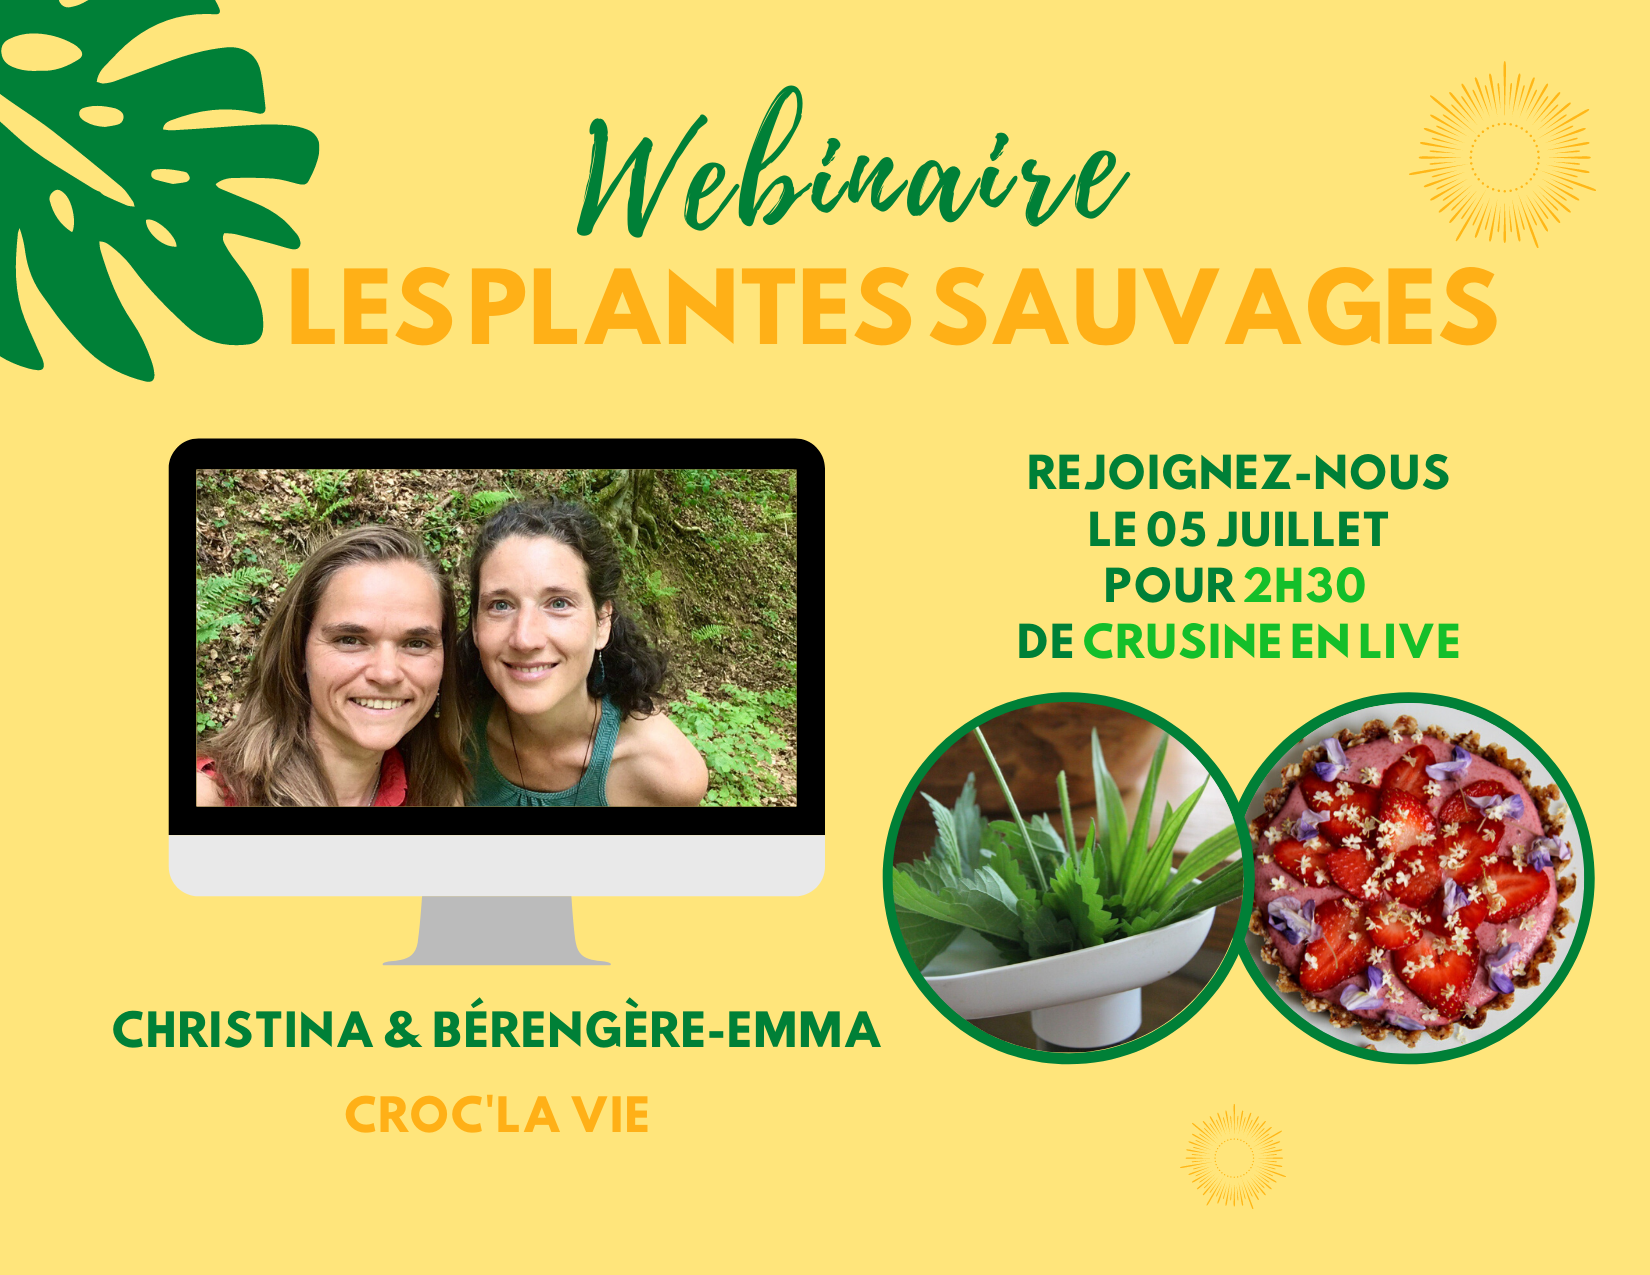 https://crusineenfamille.learnybox.com/pv-plantes-sauvages/